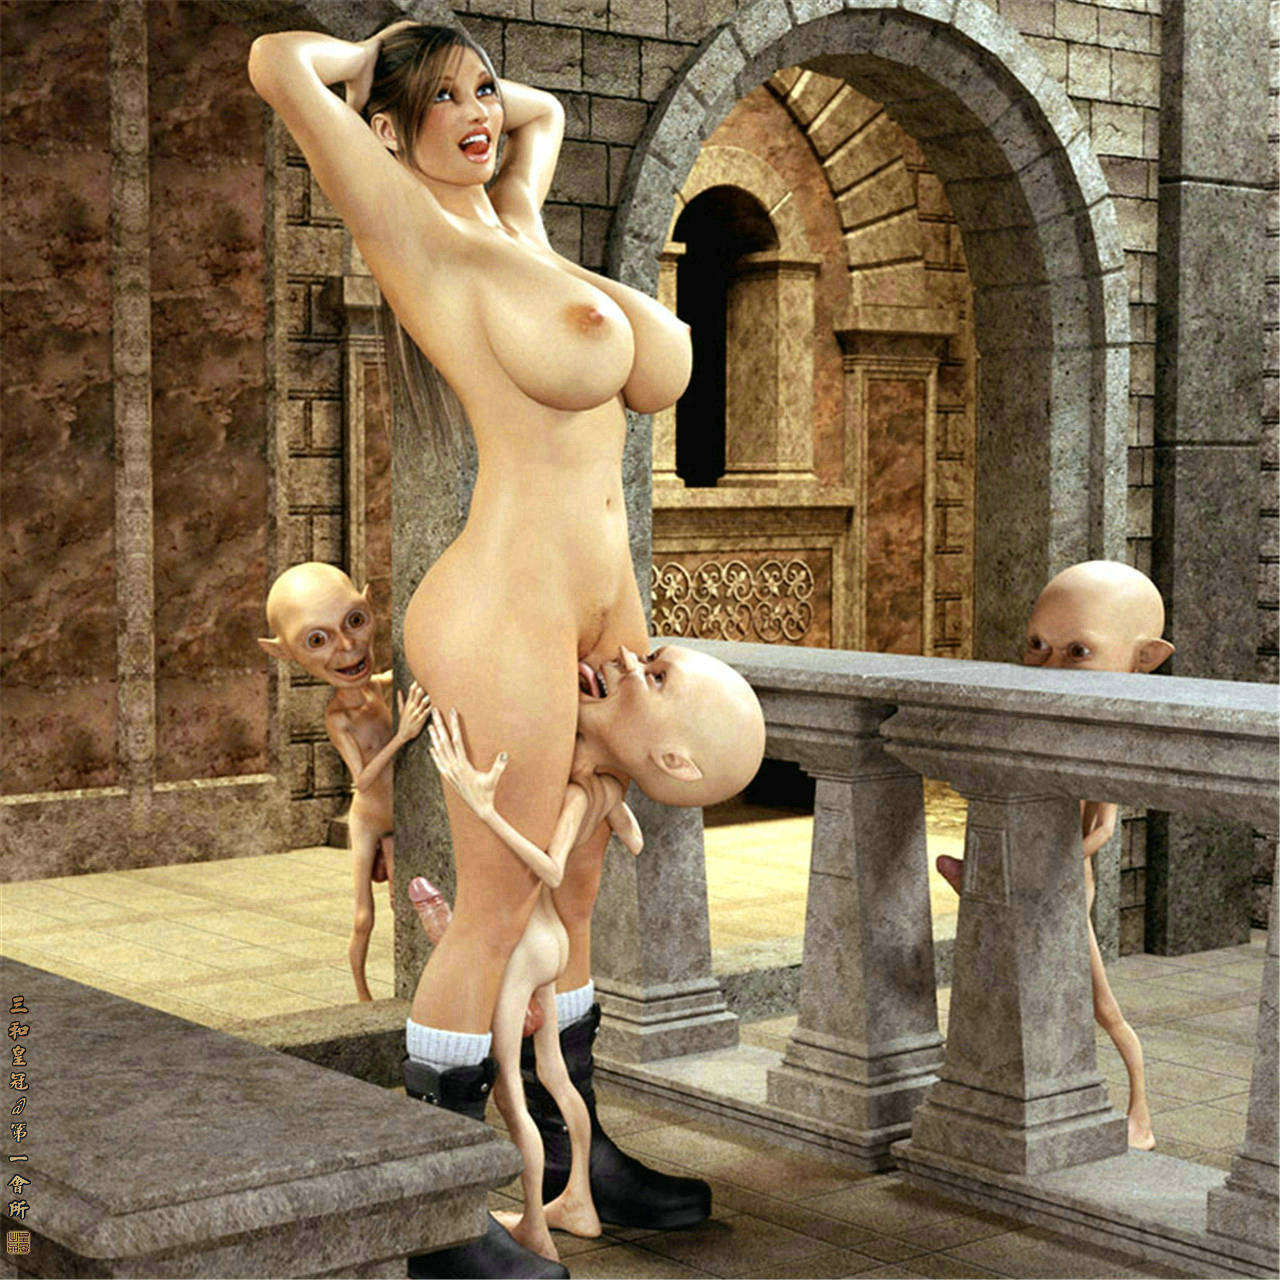 Erotic3d art hentai streaming